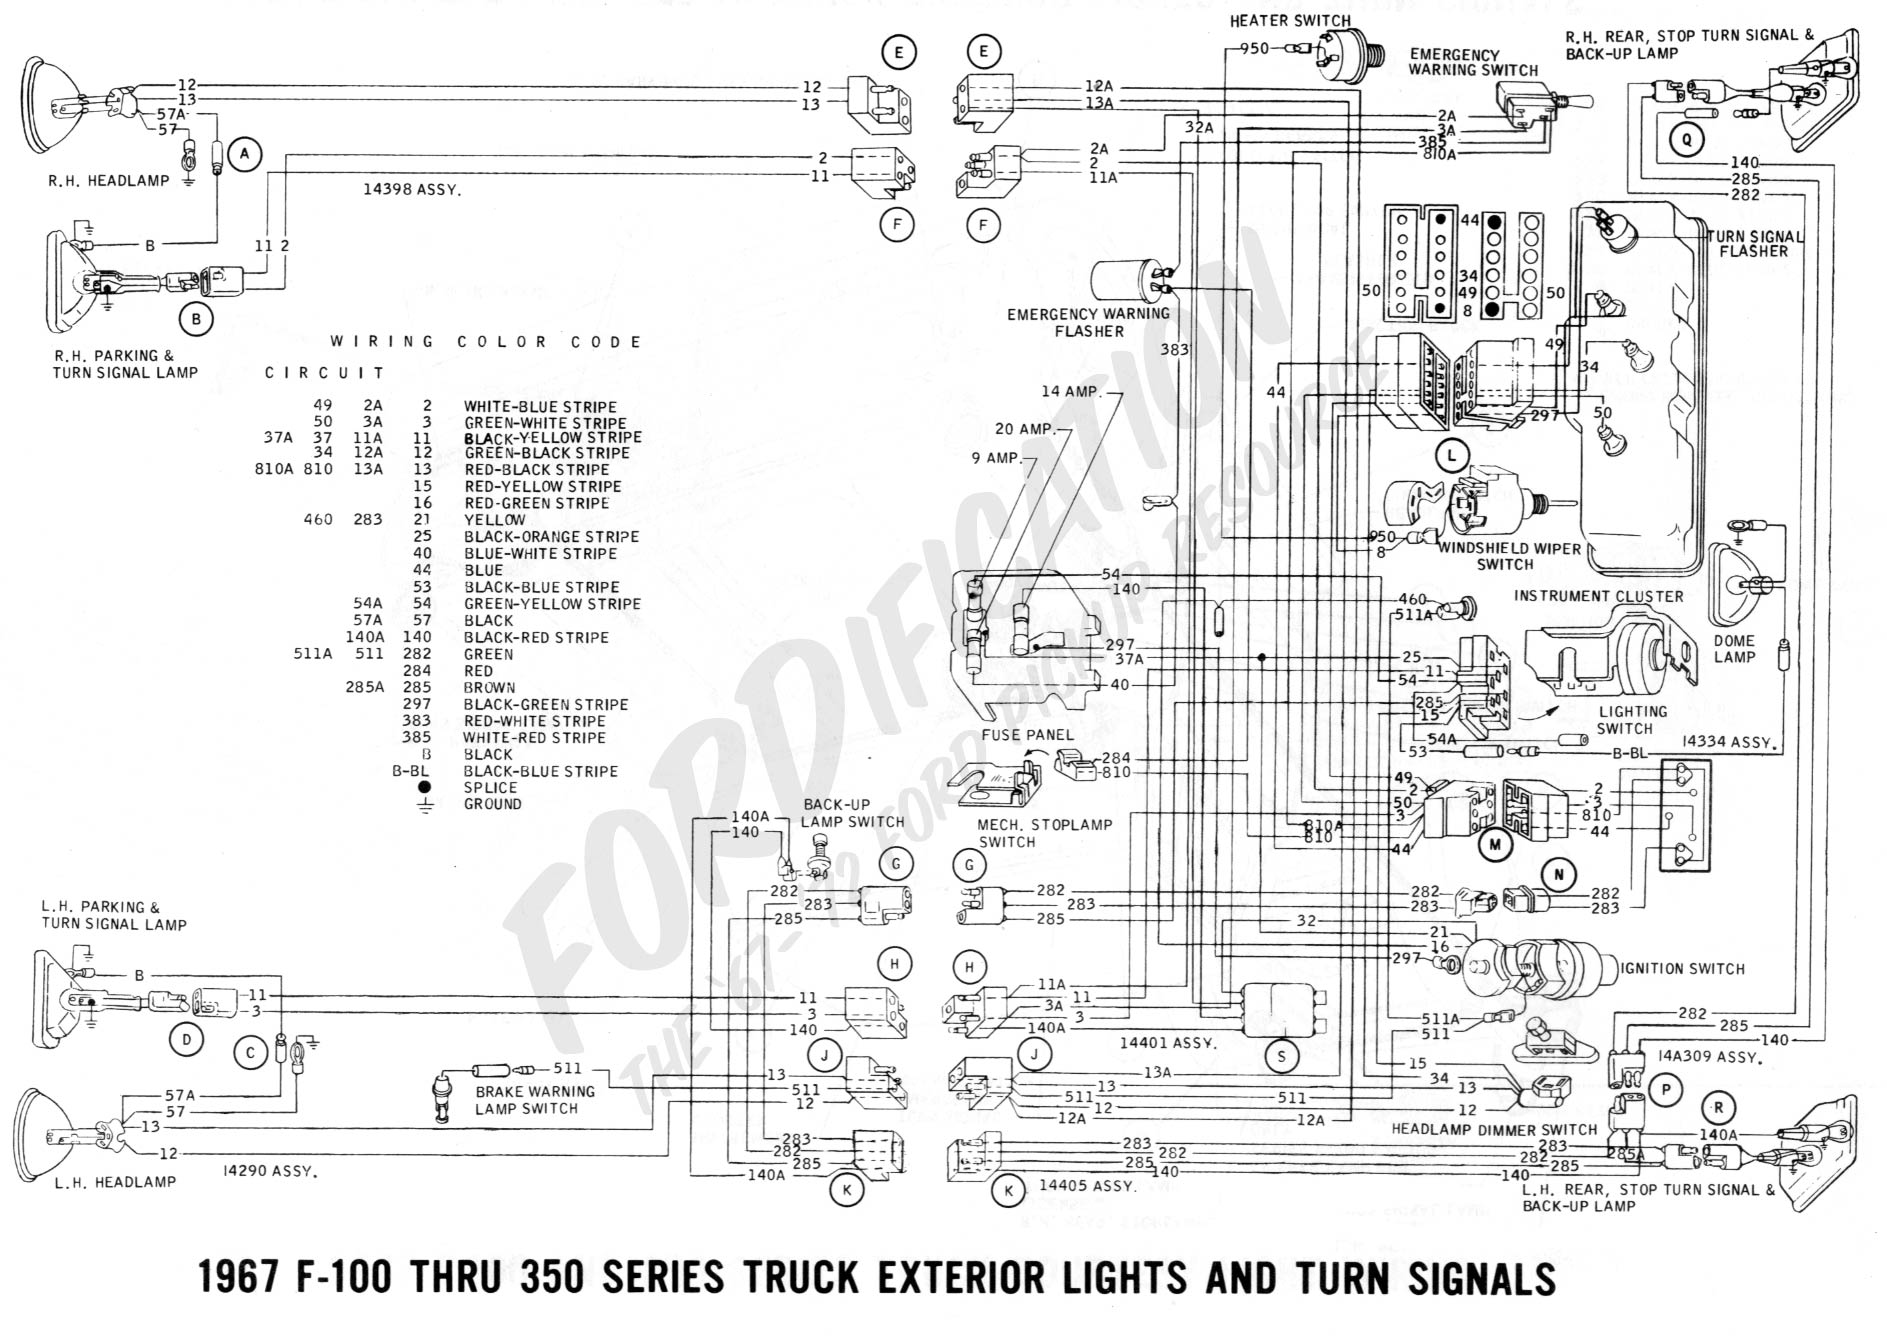 Acura Tl Wiring Diagram Furthermore 2000 Ford Ranger Camshaft Rh 85 Mac Happen De